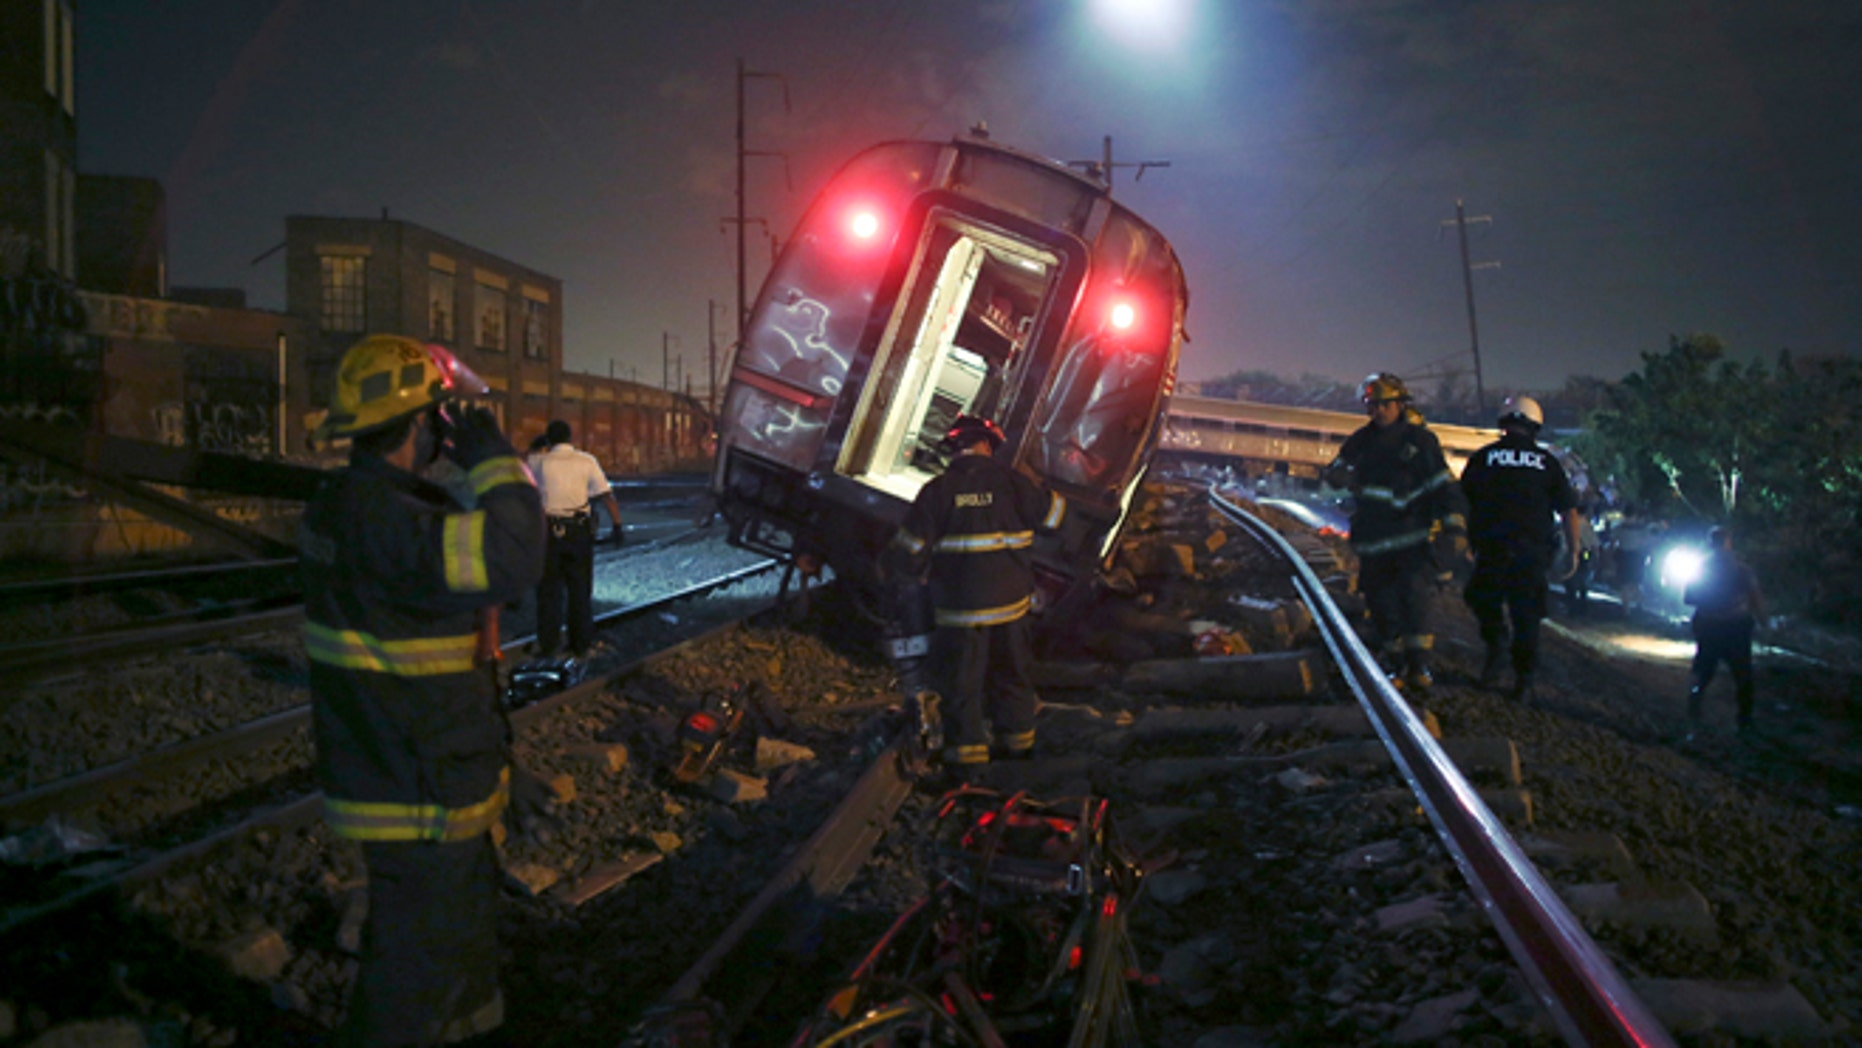 Emergency personnel work the scene of a deadly train wreck, Tuesday, May 12, 2015, in Philadelphia. An Amtrak train headed to New York City derailed and tipped over in Philadelphia. (AP Photo/ Joseph Kaczmarek)